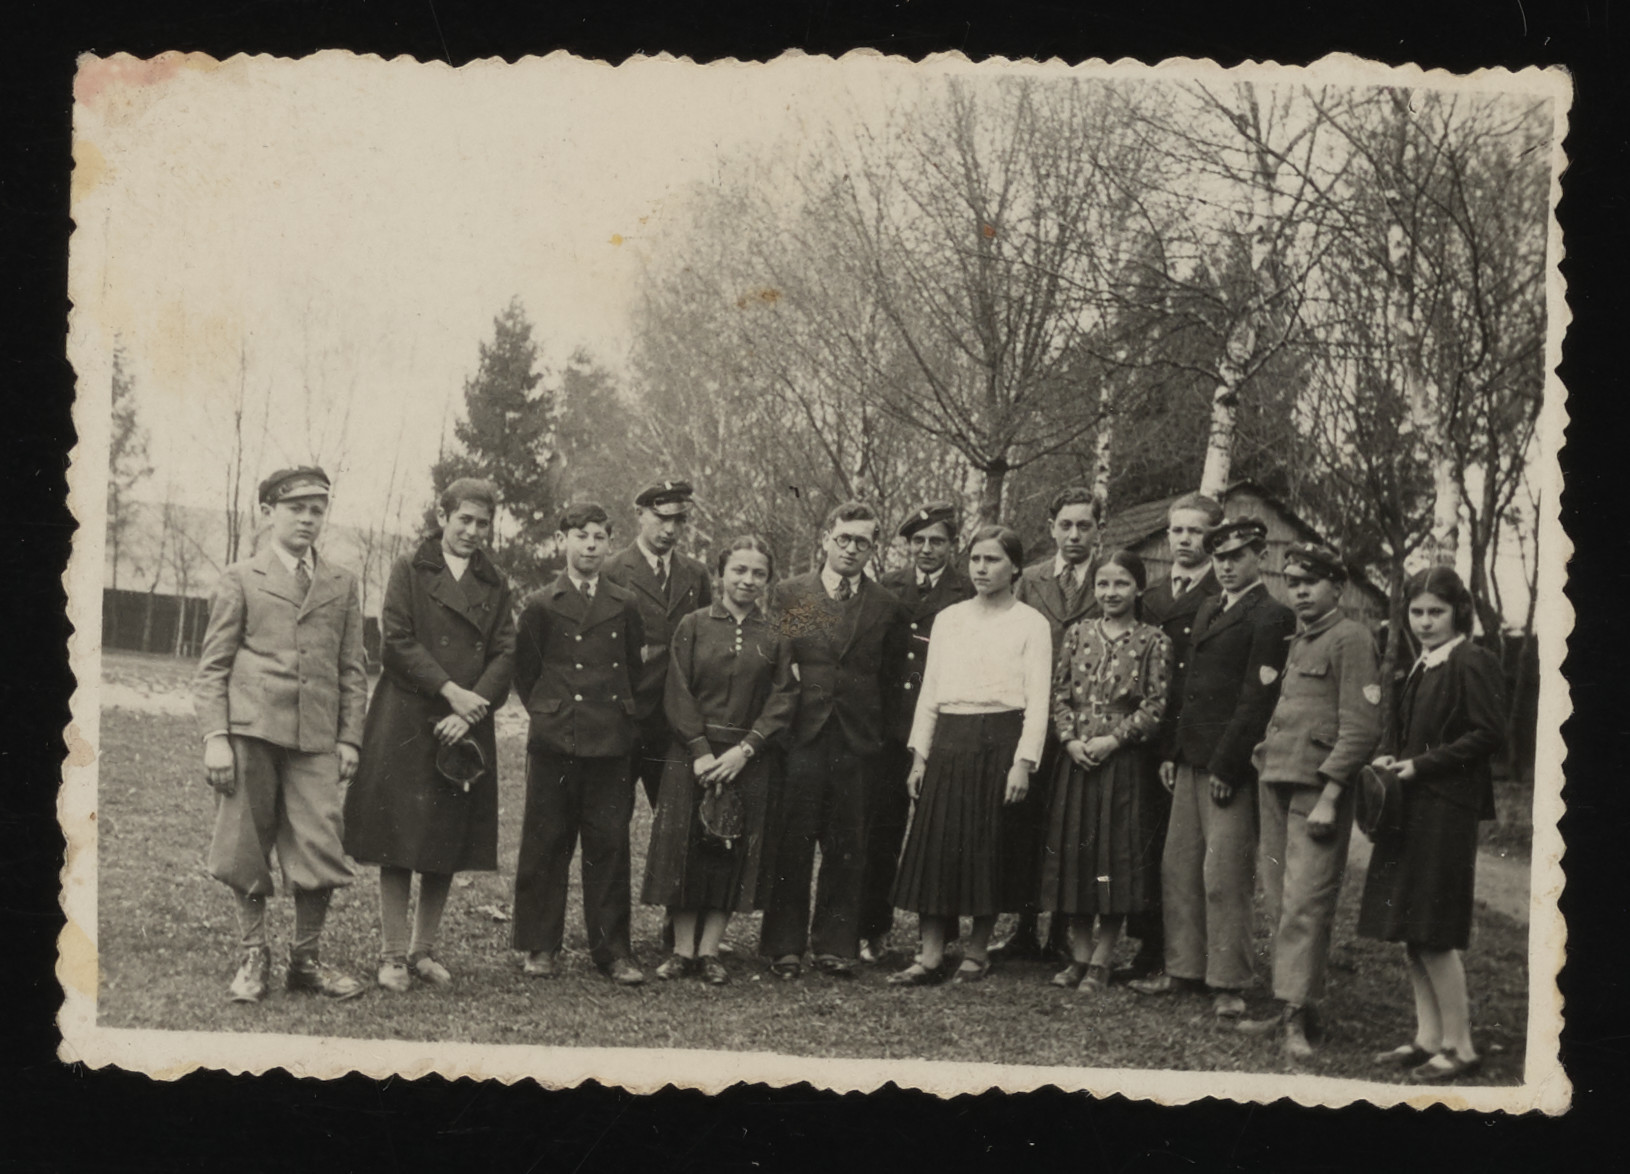 Group portrait of Polish and Jewish students from the Kolbuszowa high school.  Hanka Neiss is second from the left.